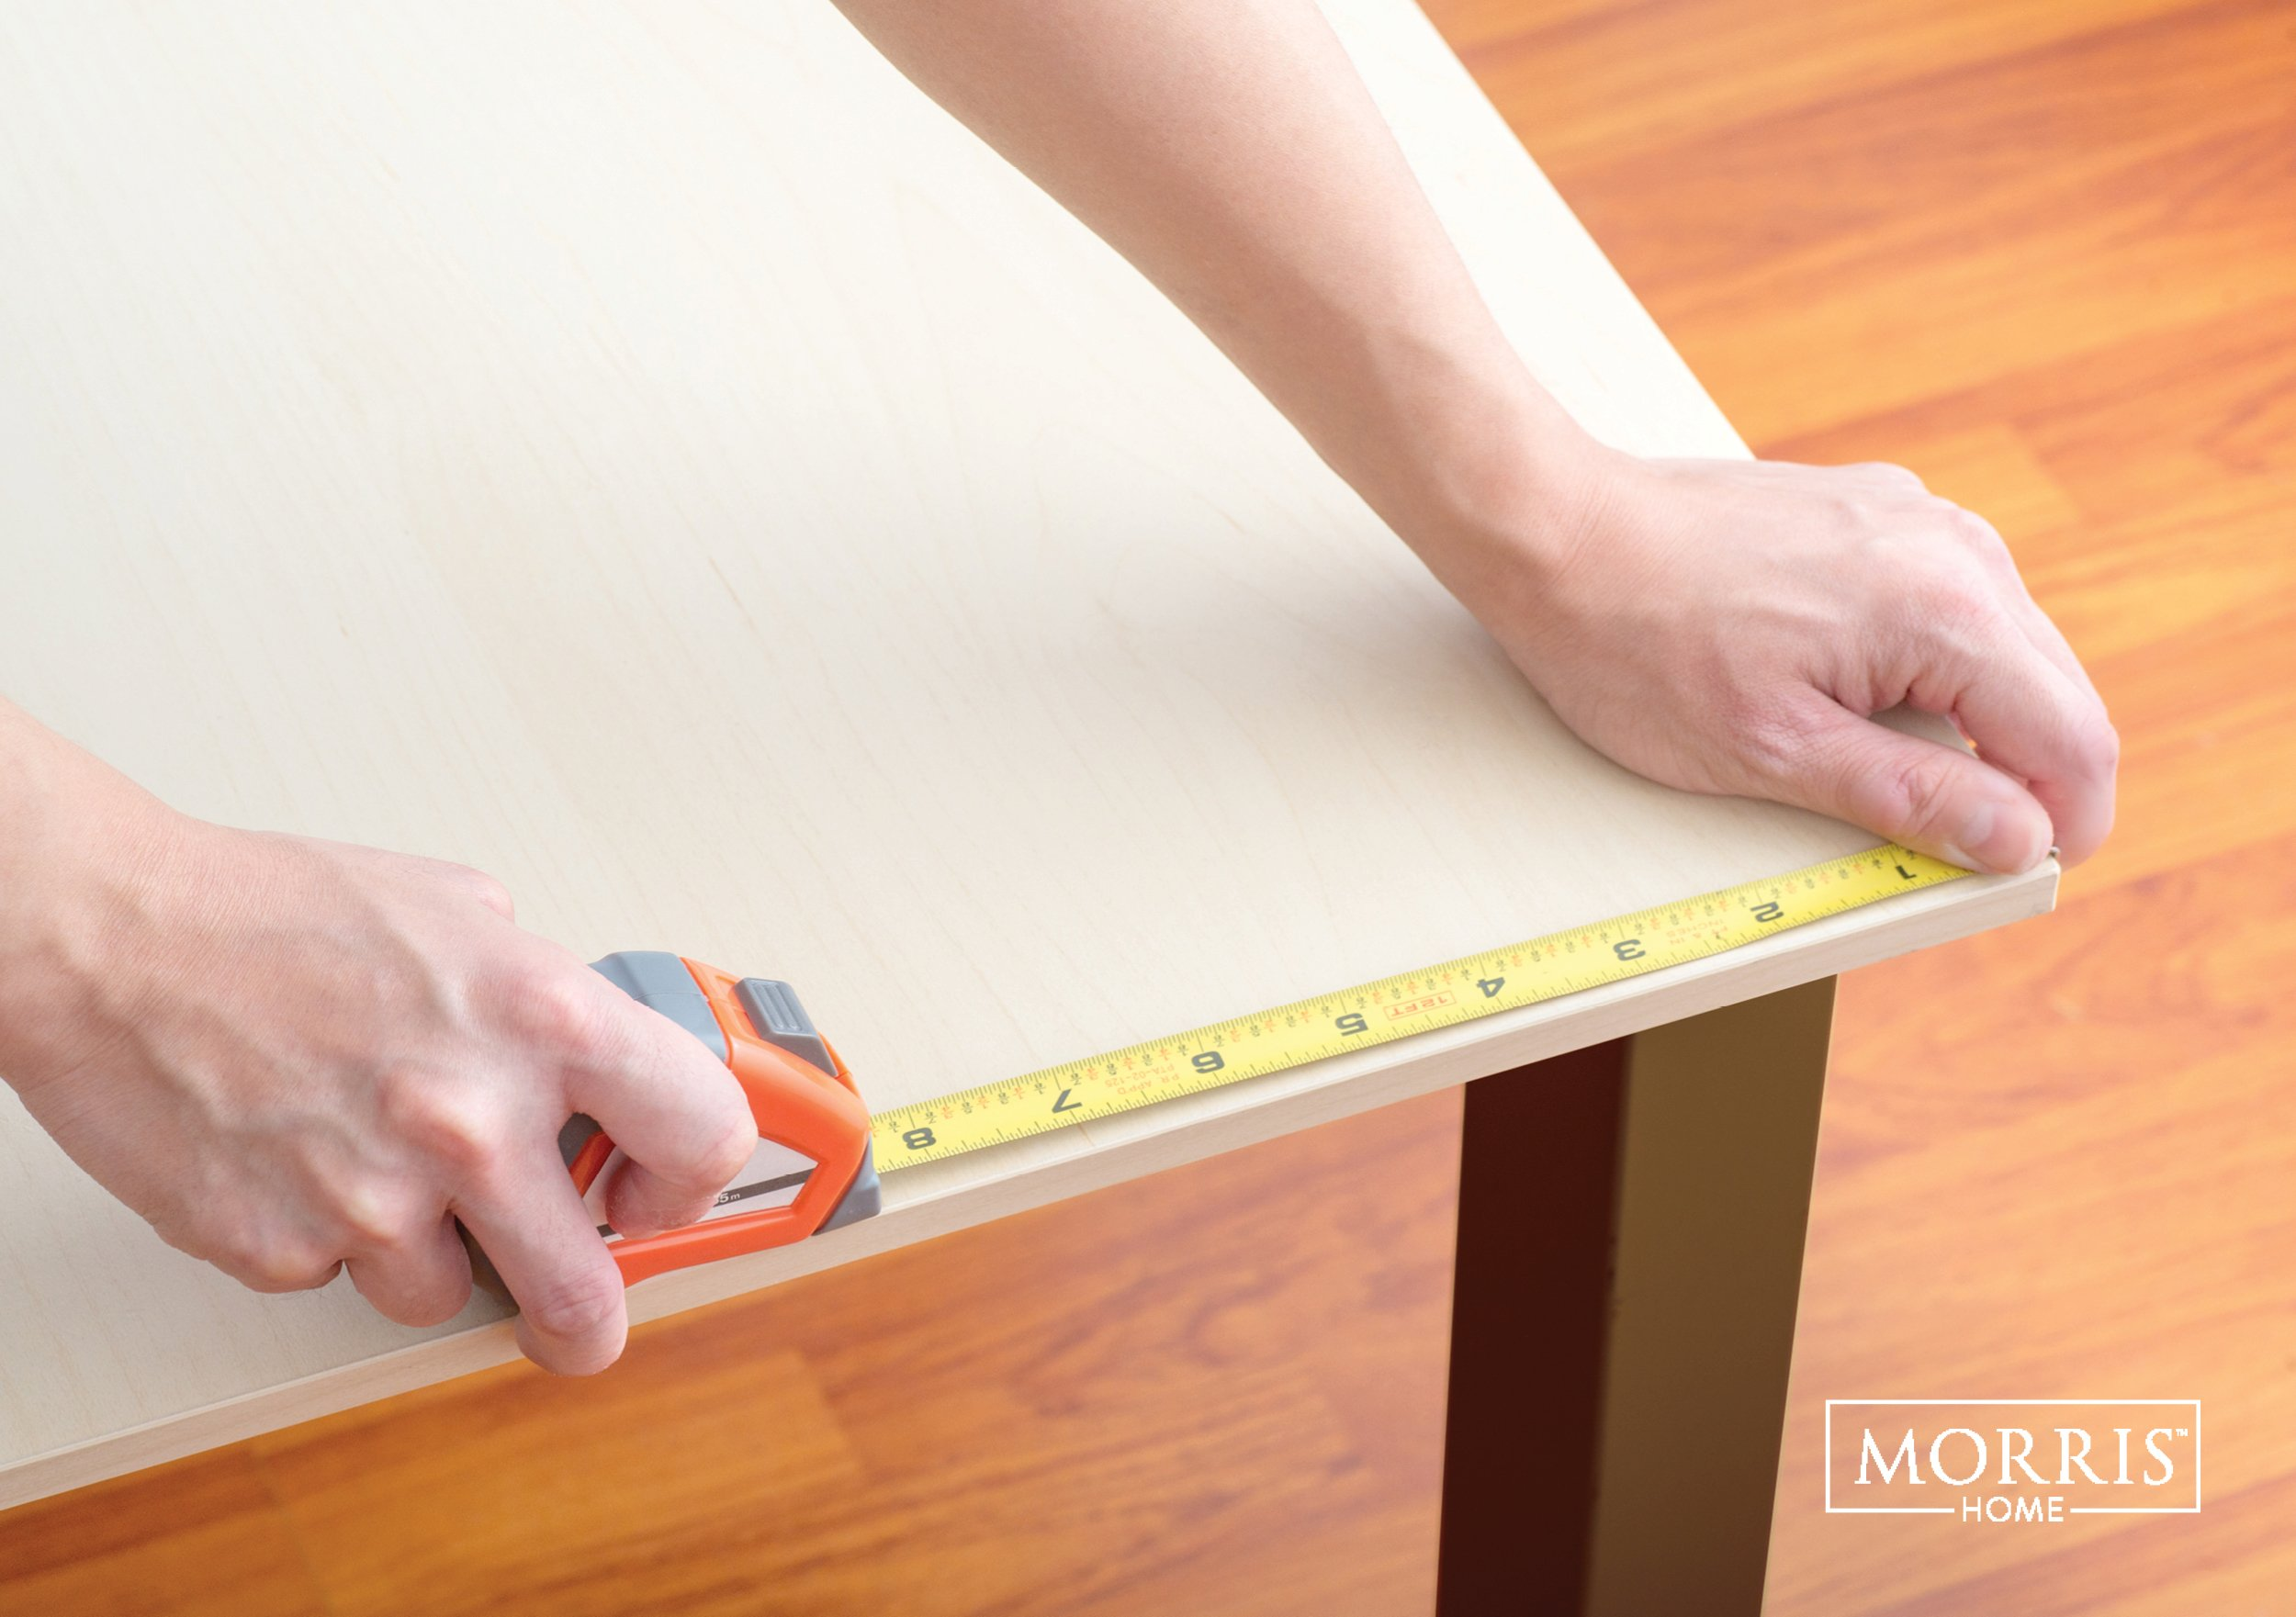 Measuring A Sofa Youu0027ll Need To Measure The Width, Height, Depth And  Diagonal Depth. For Width , Measure At The Widest Point Of The Sofa , From  Arm To Arm.